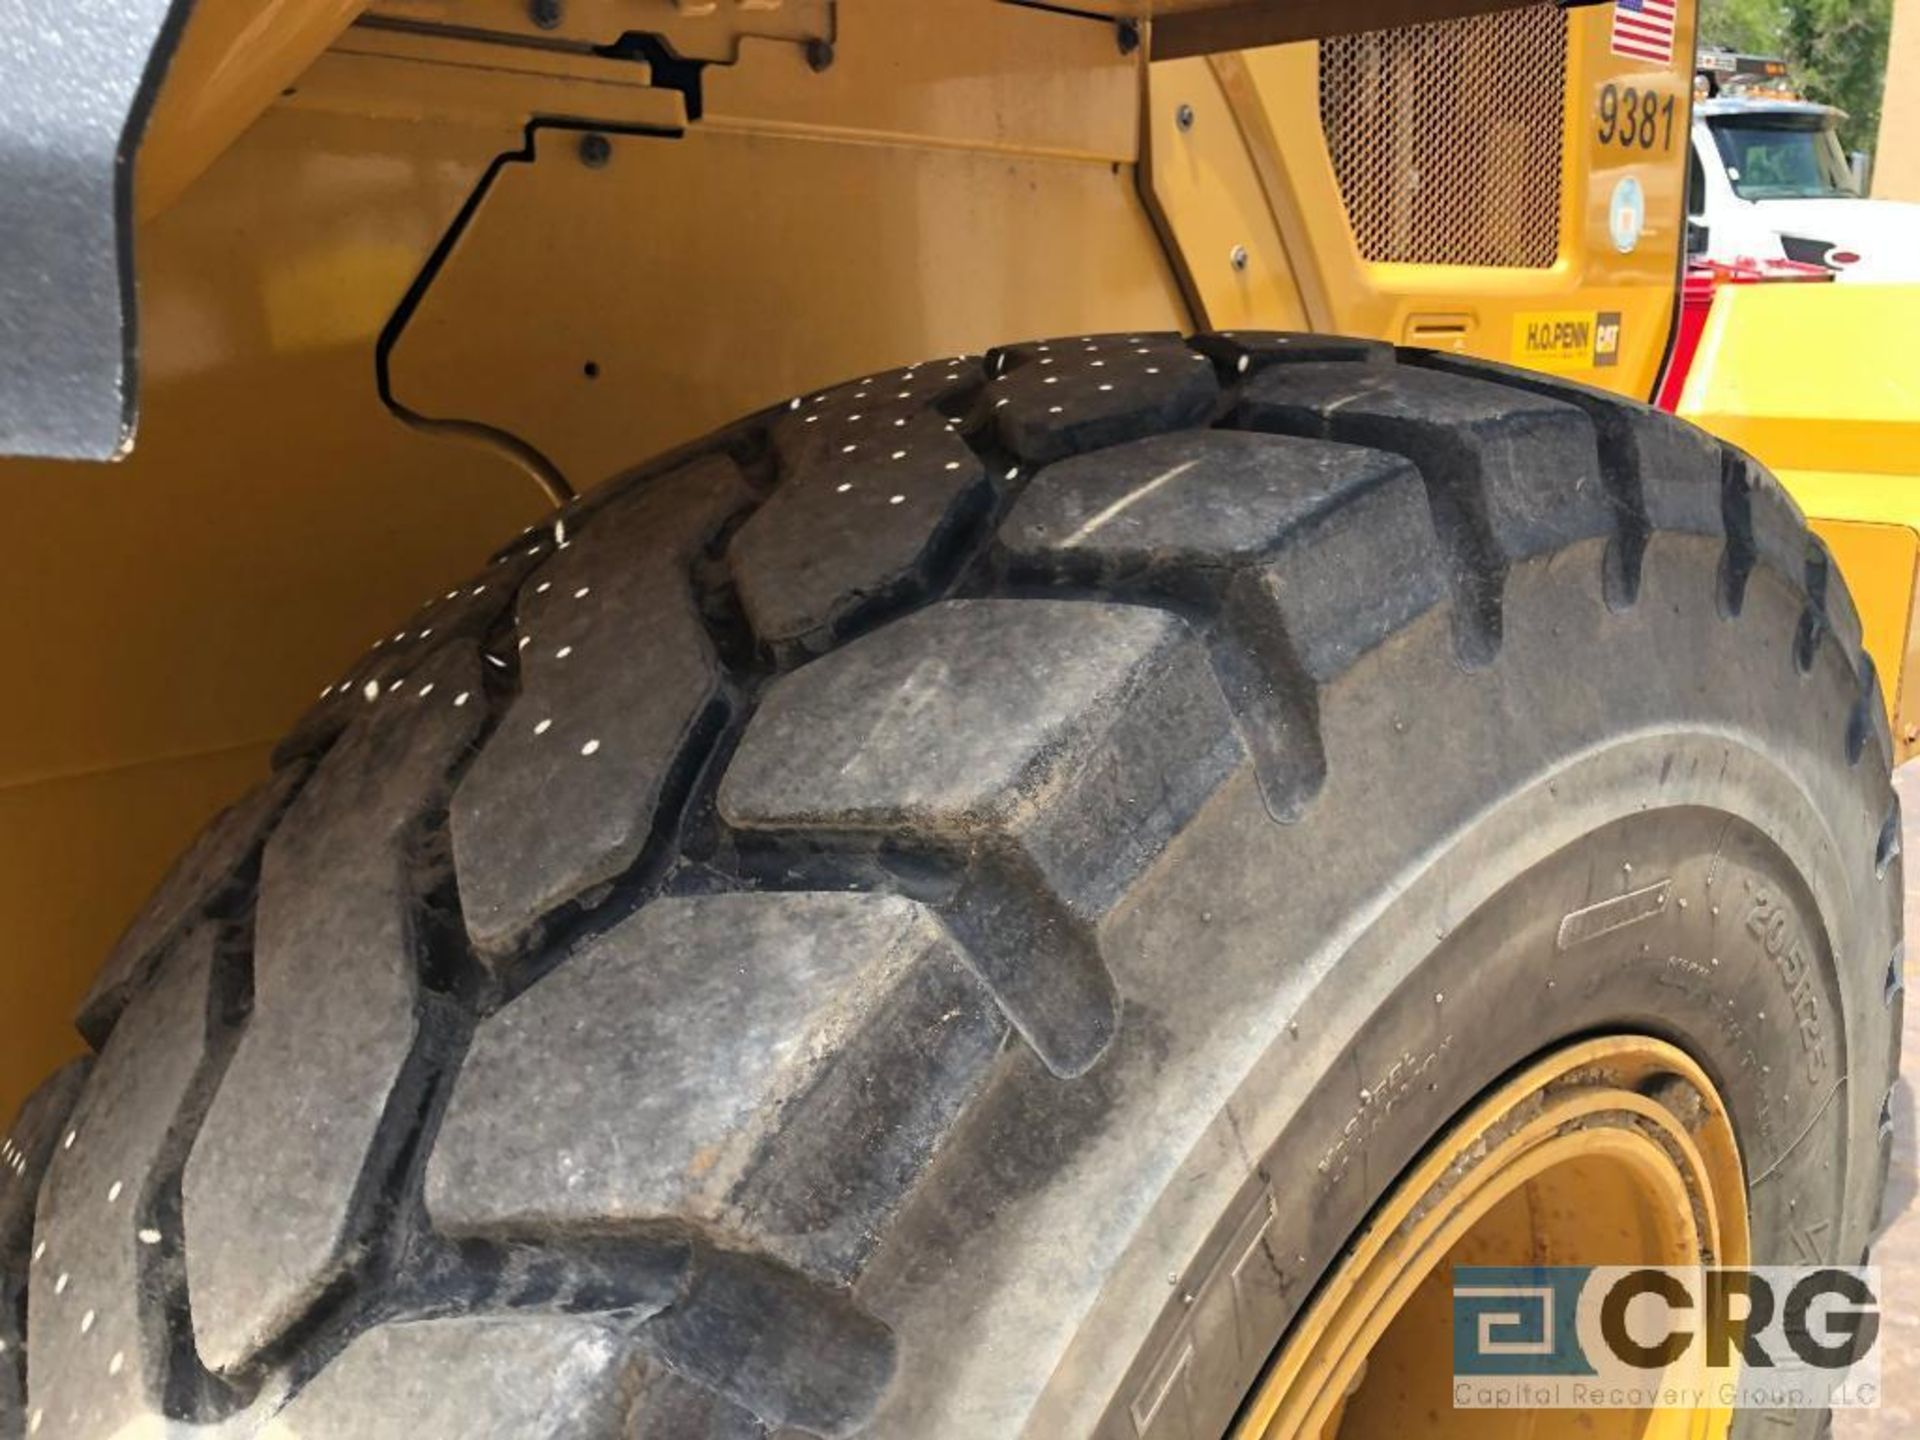 Lot 301 - 2015 CAT 938M Wheel Loader Hydraulic Quick Coupler, Cold Weather Start